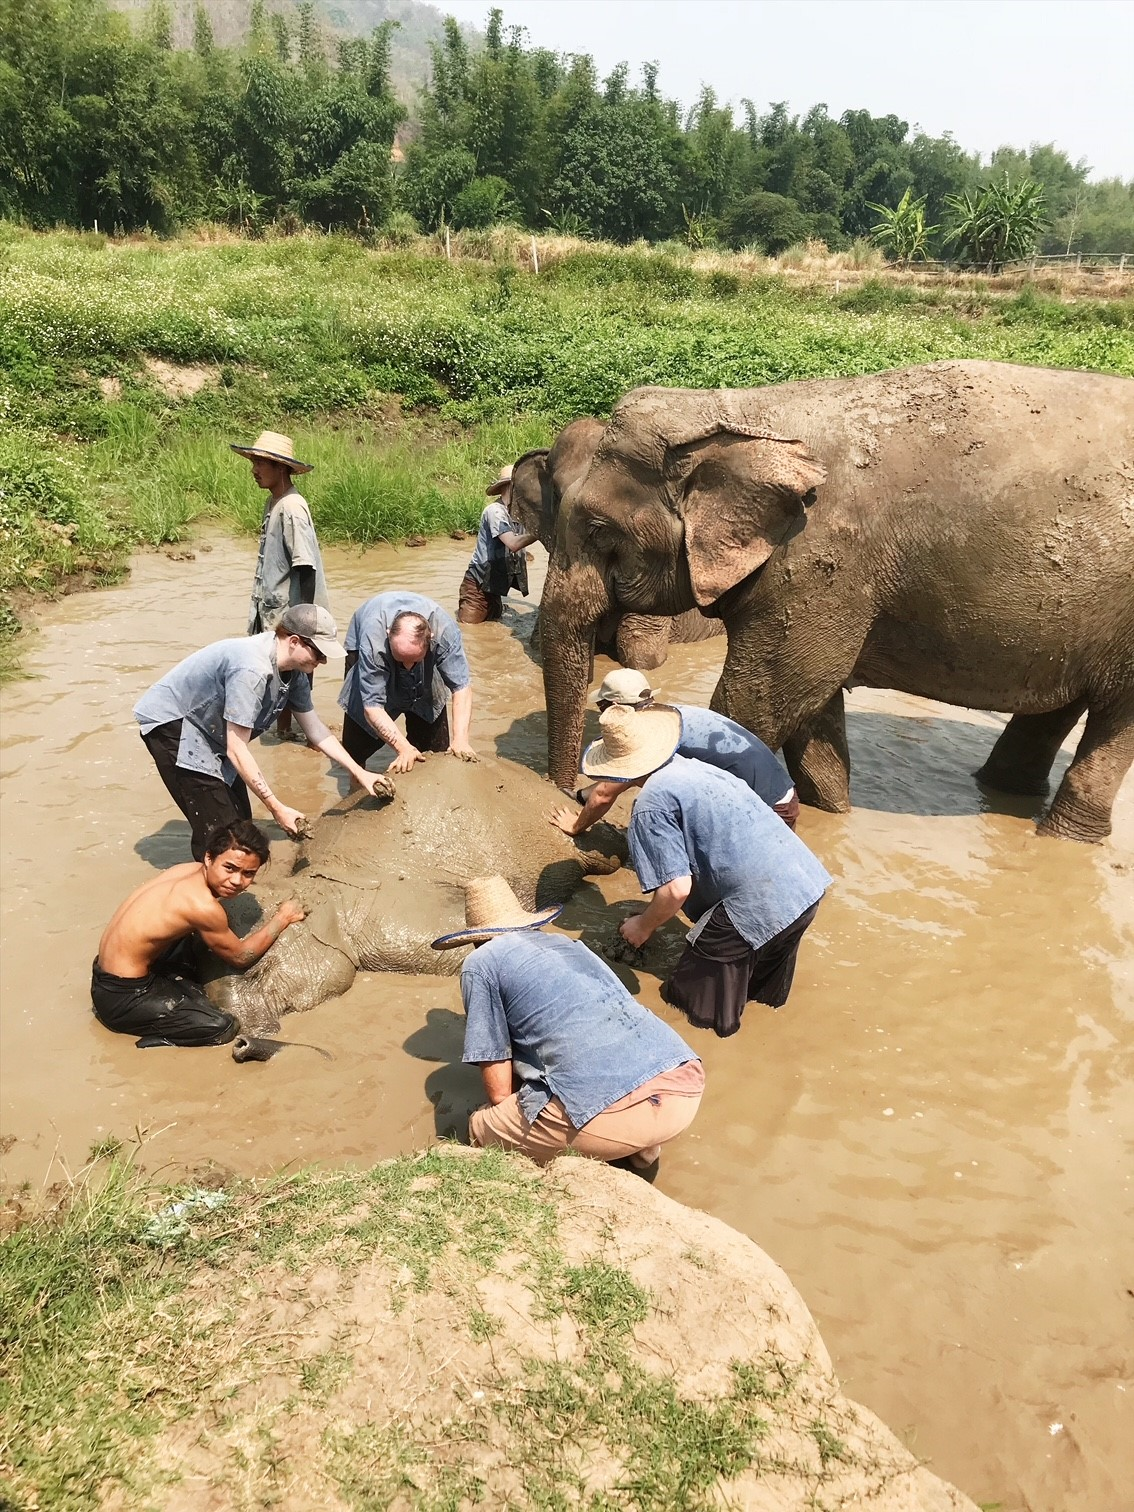 Magical Experience with the Elephants at Lanna Kingdom Elephant Sanctuary in Chiang Mai, Thailand. Ethical, no-riding Sanctuary.